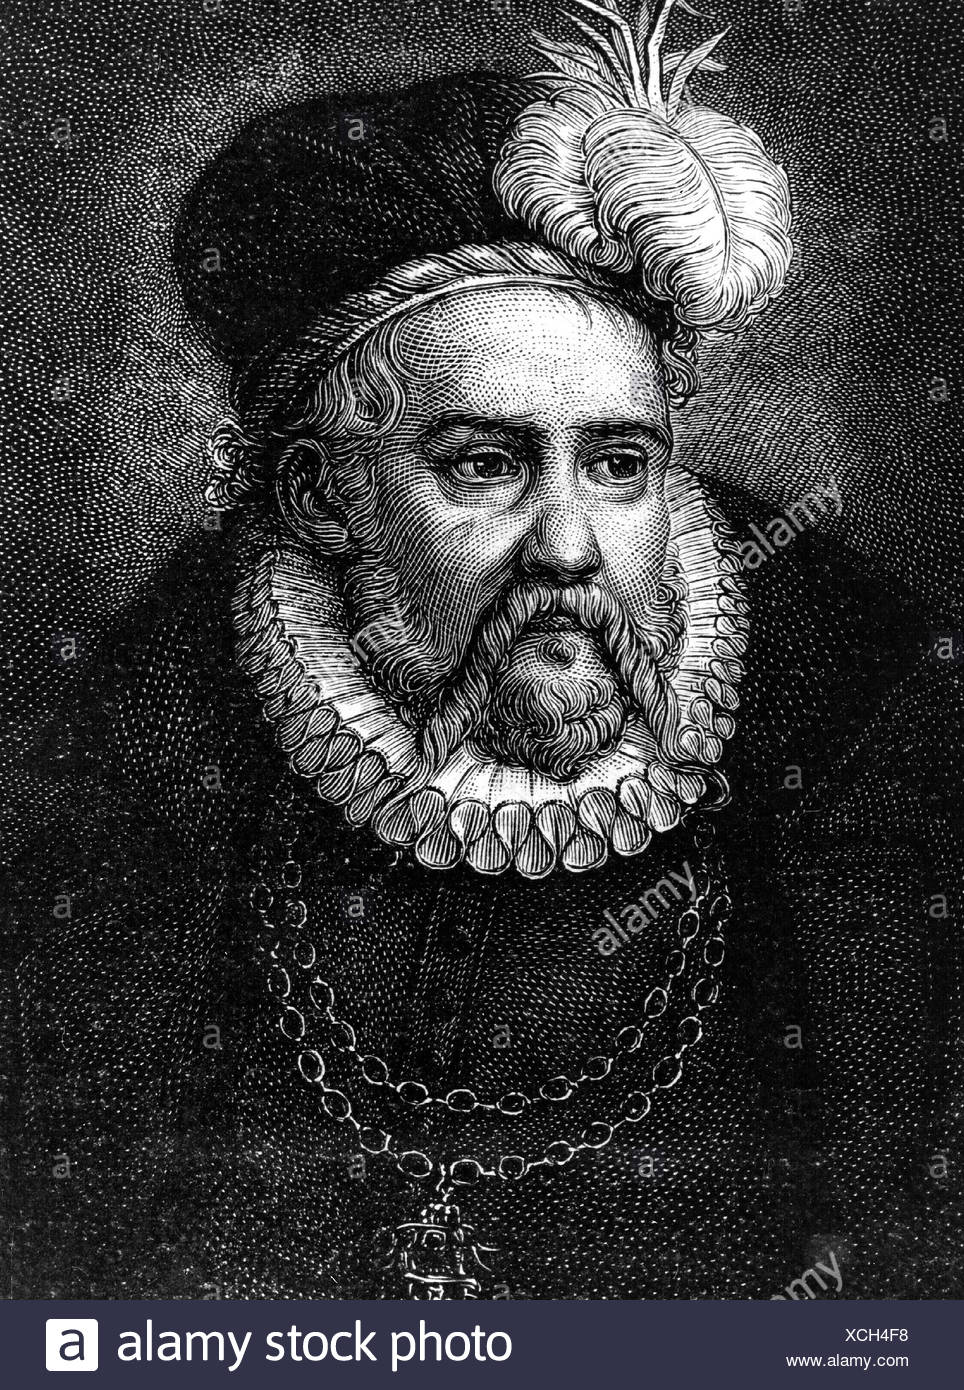 Brahe, Tycho, 14.12.1546 - 24.10.1601, Danish astronomer, portrait, engraving, nobleman, Tyge, , Artist's Copyright has not to be cleared - Stock Image